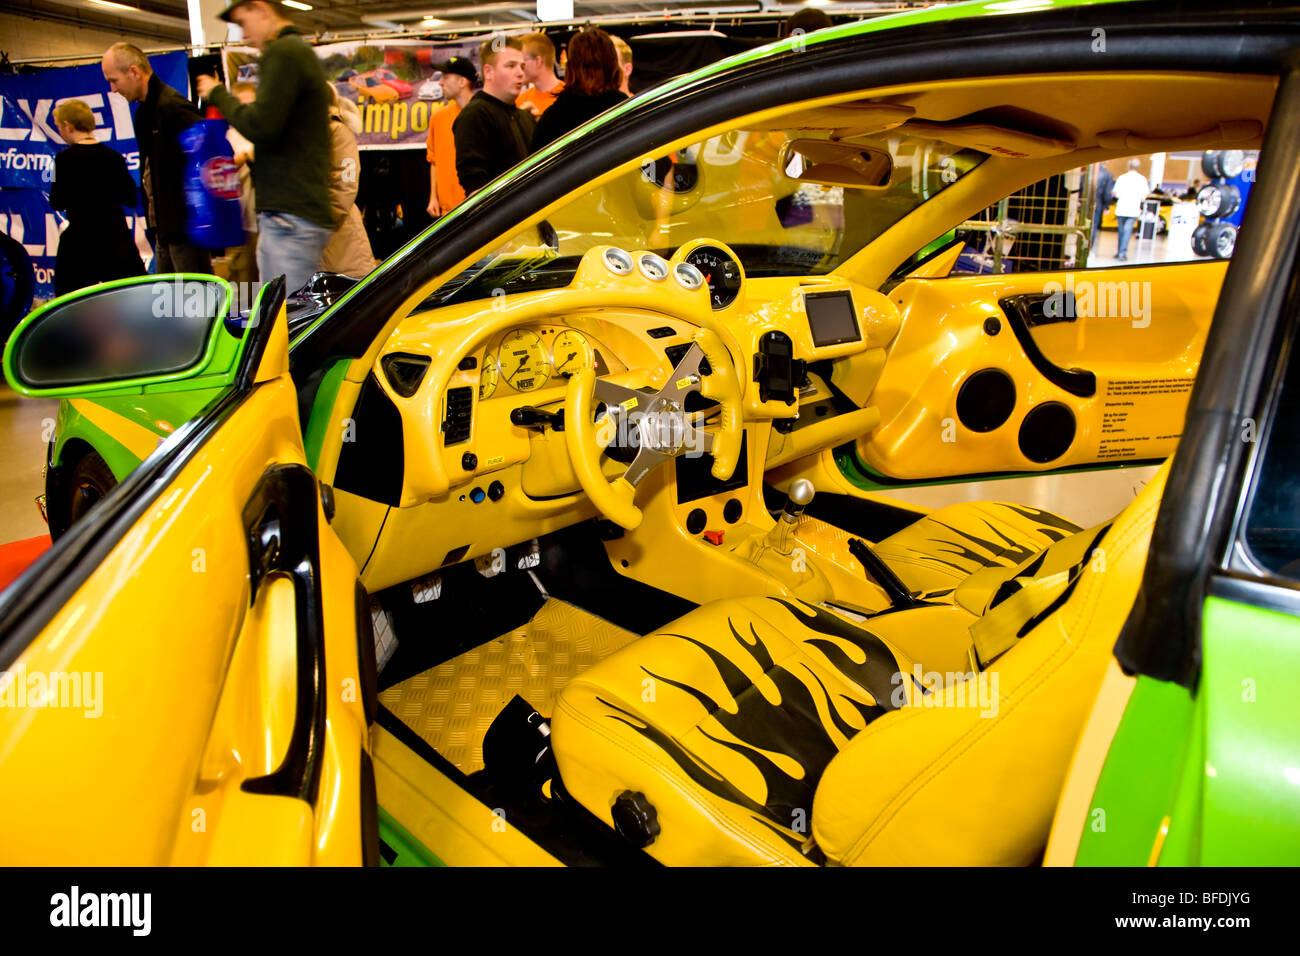 yellow and black interior in a custom styled car at scandinavian stock photo 26730468 alamy. Black Bedroom Furniture Sets. Home Design Ideas